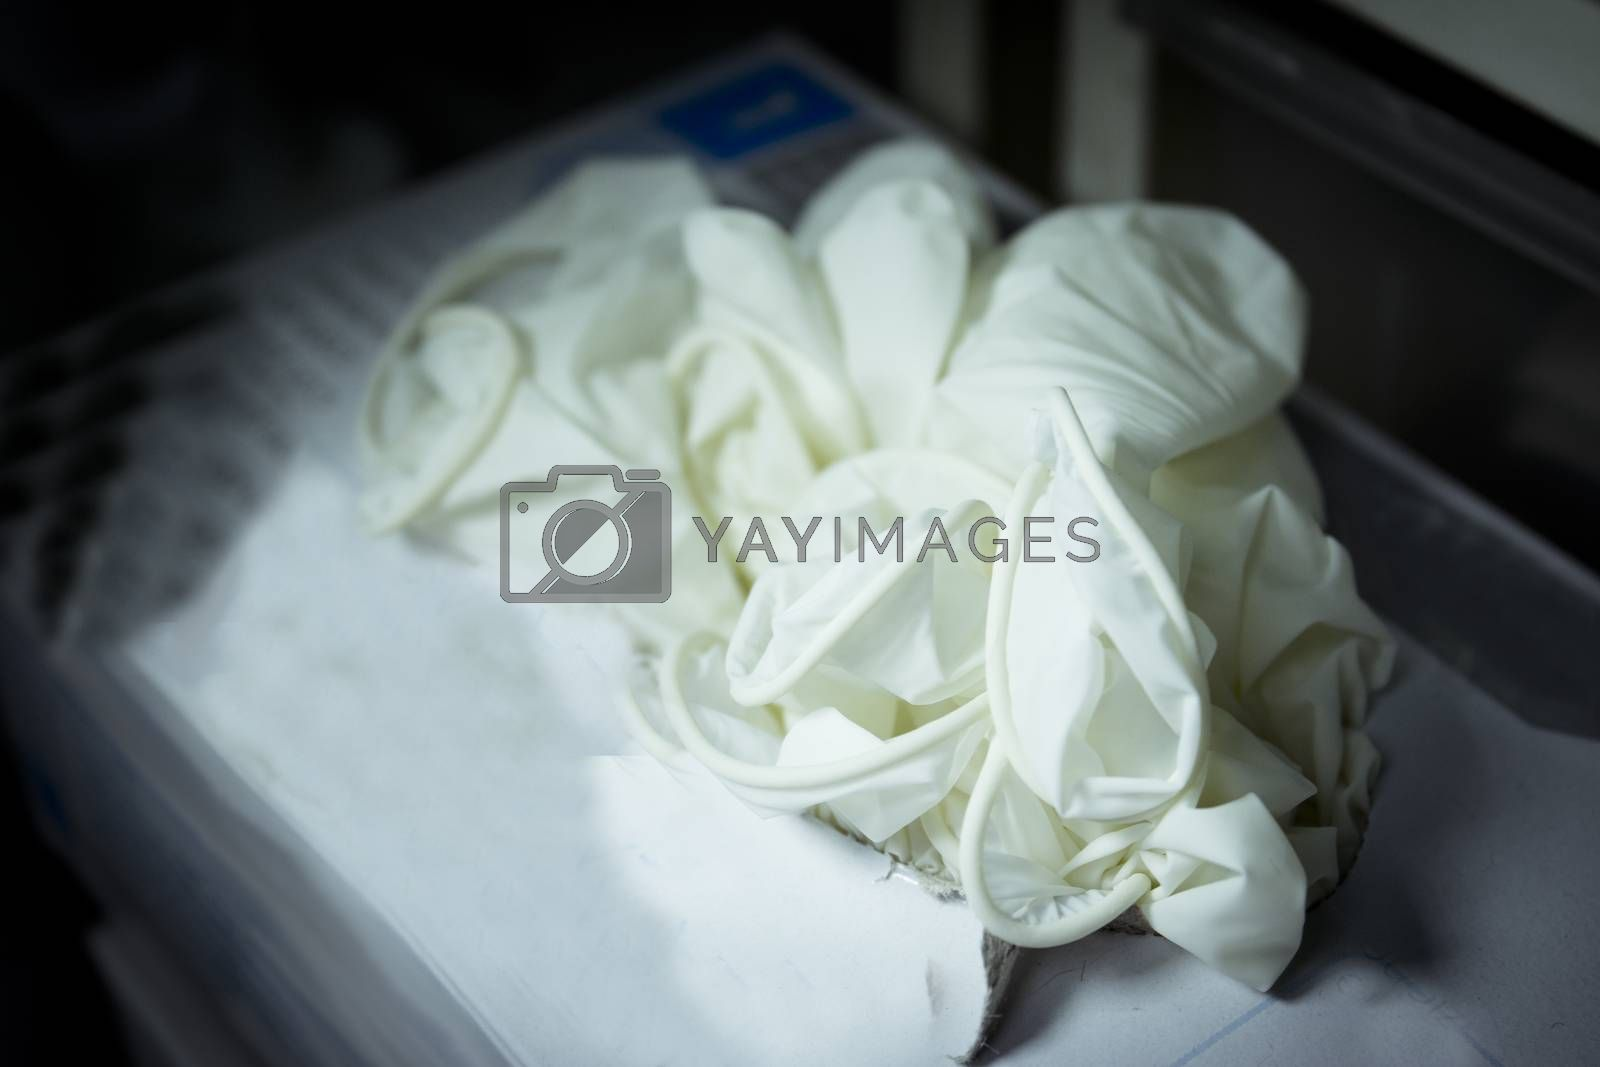 White latex gloves for hospital use. No people